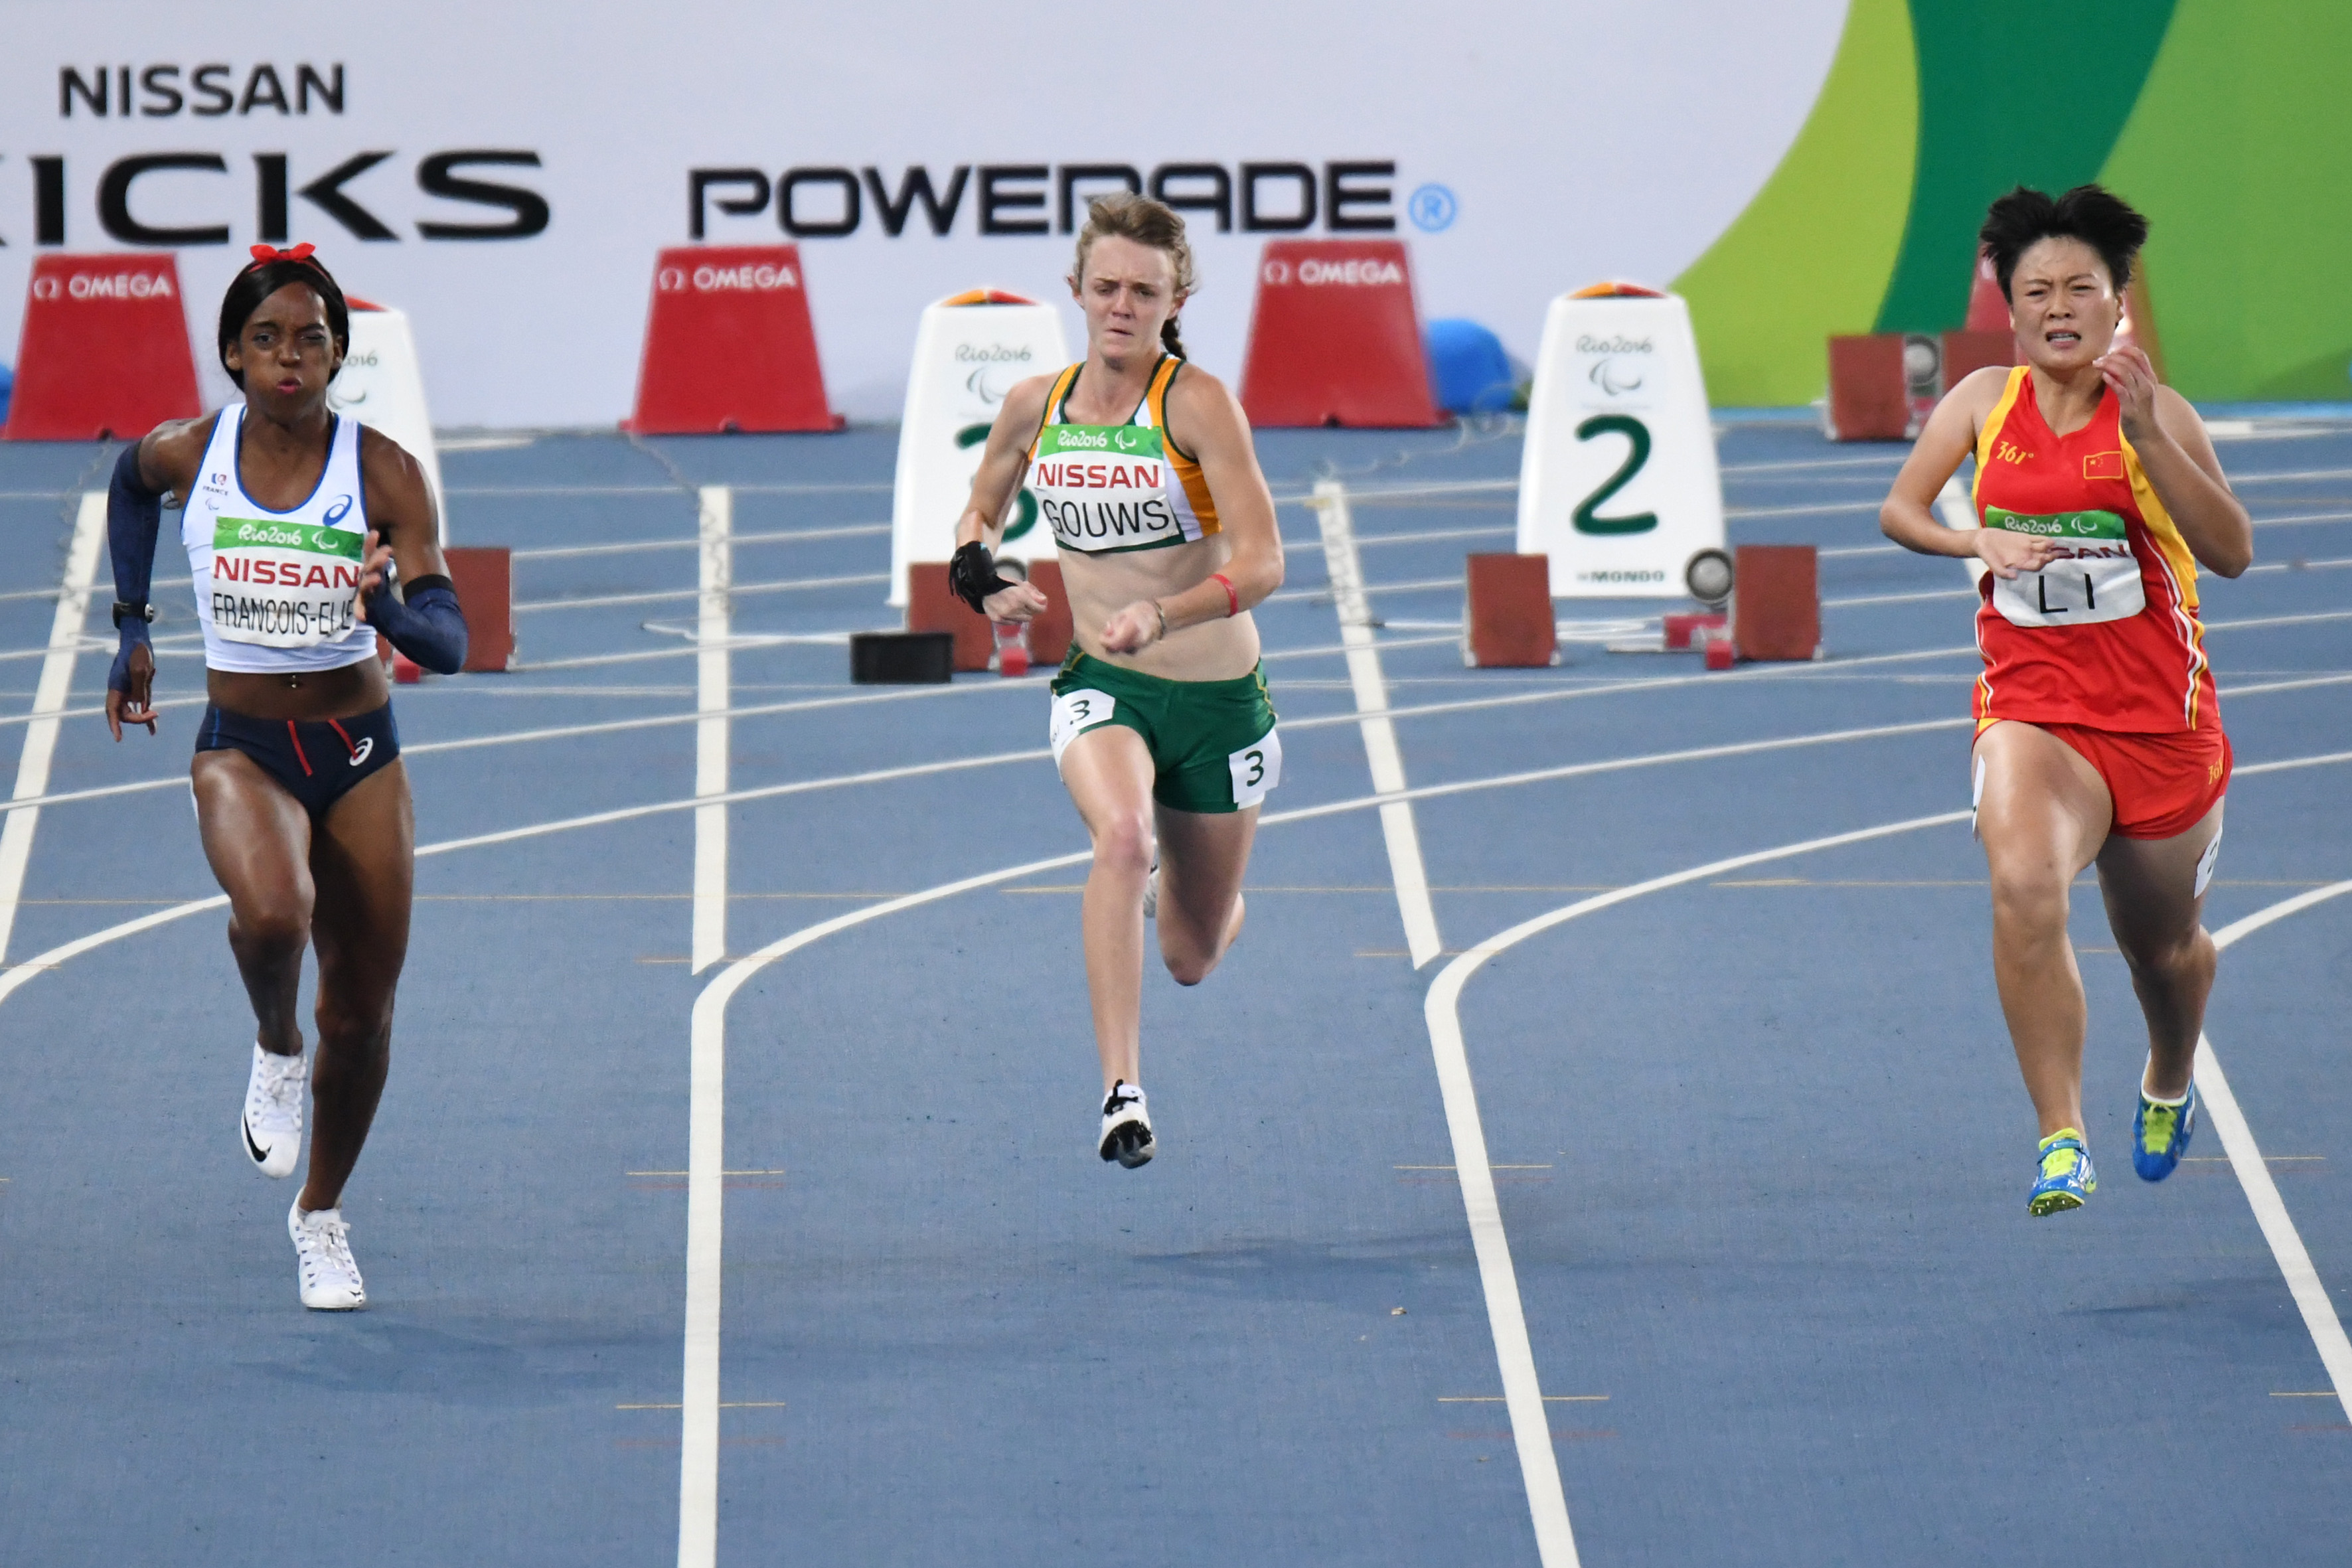 Liezel lapping up her first Paralympic experience